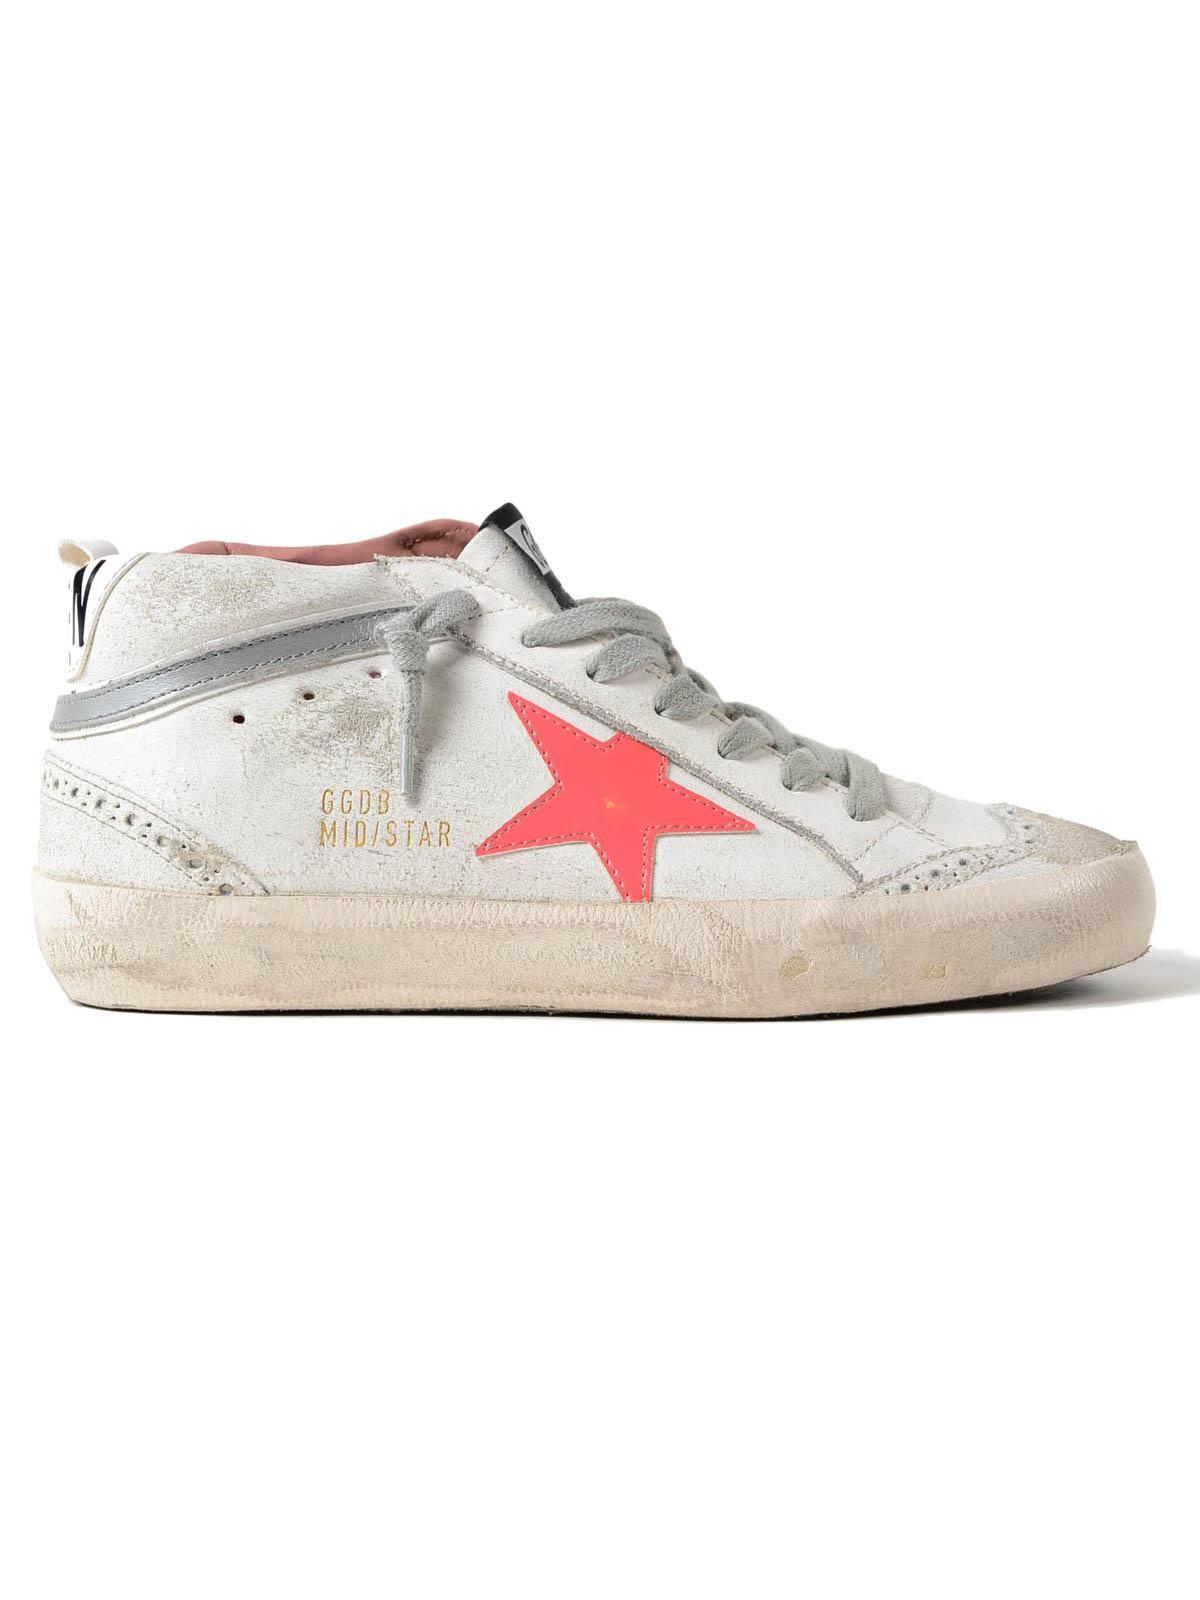 bb1e3010d Golden Goose Deluxe Brand Sneakers Mid Star Pink Patent in White - Lyst